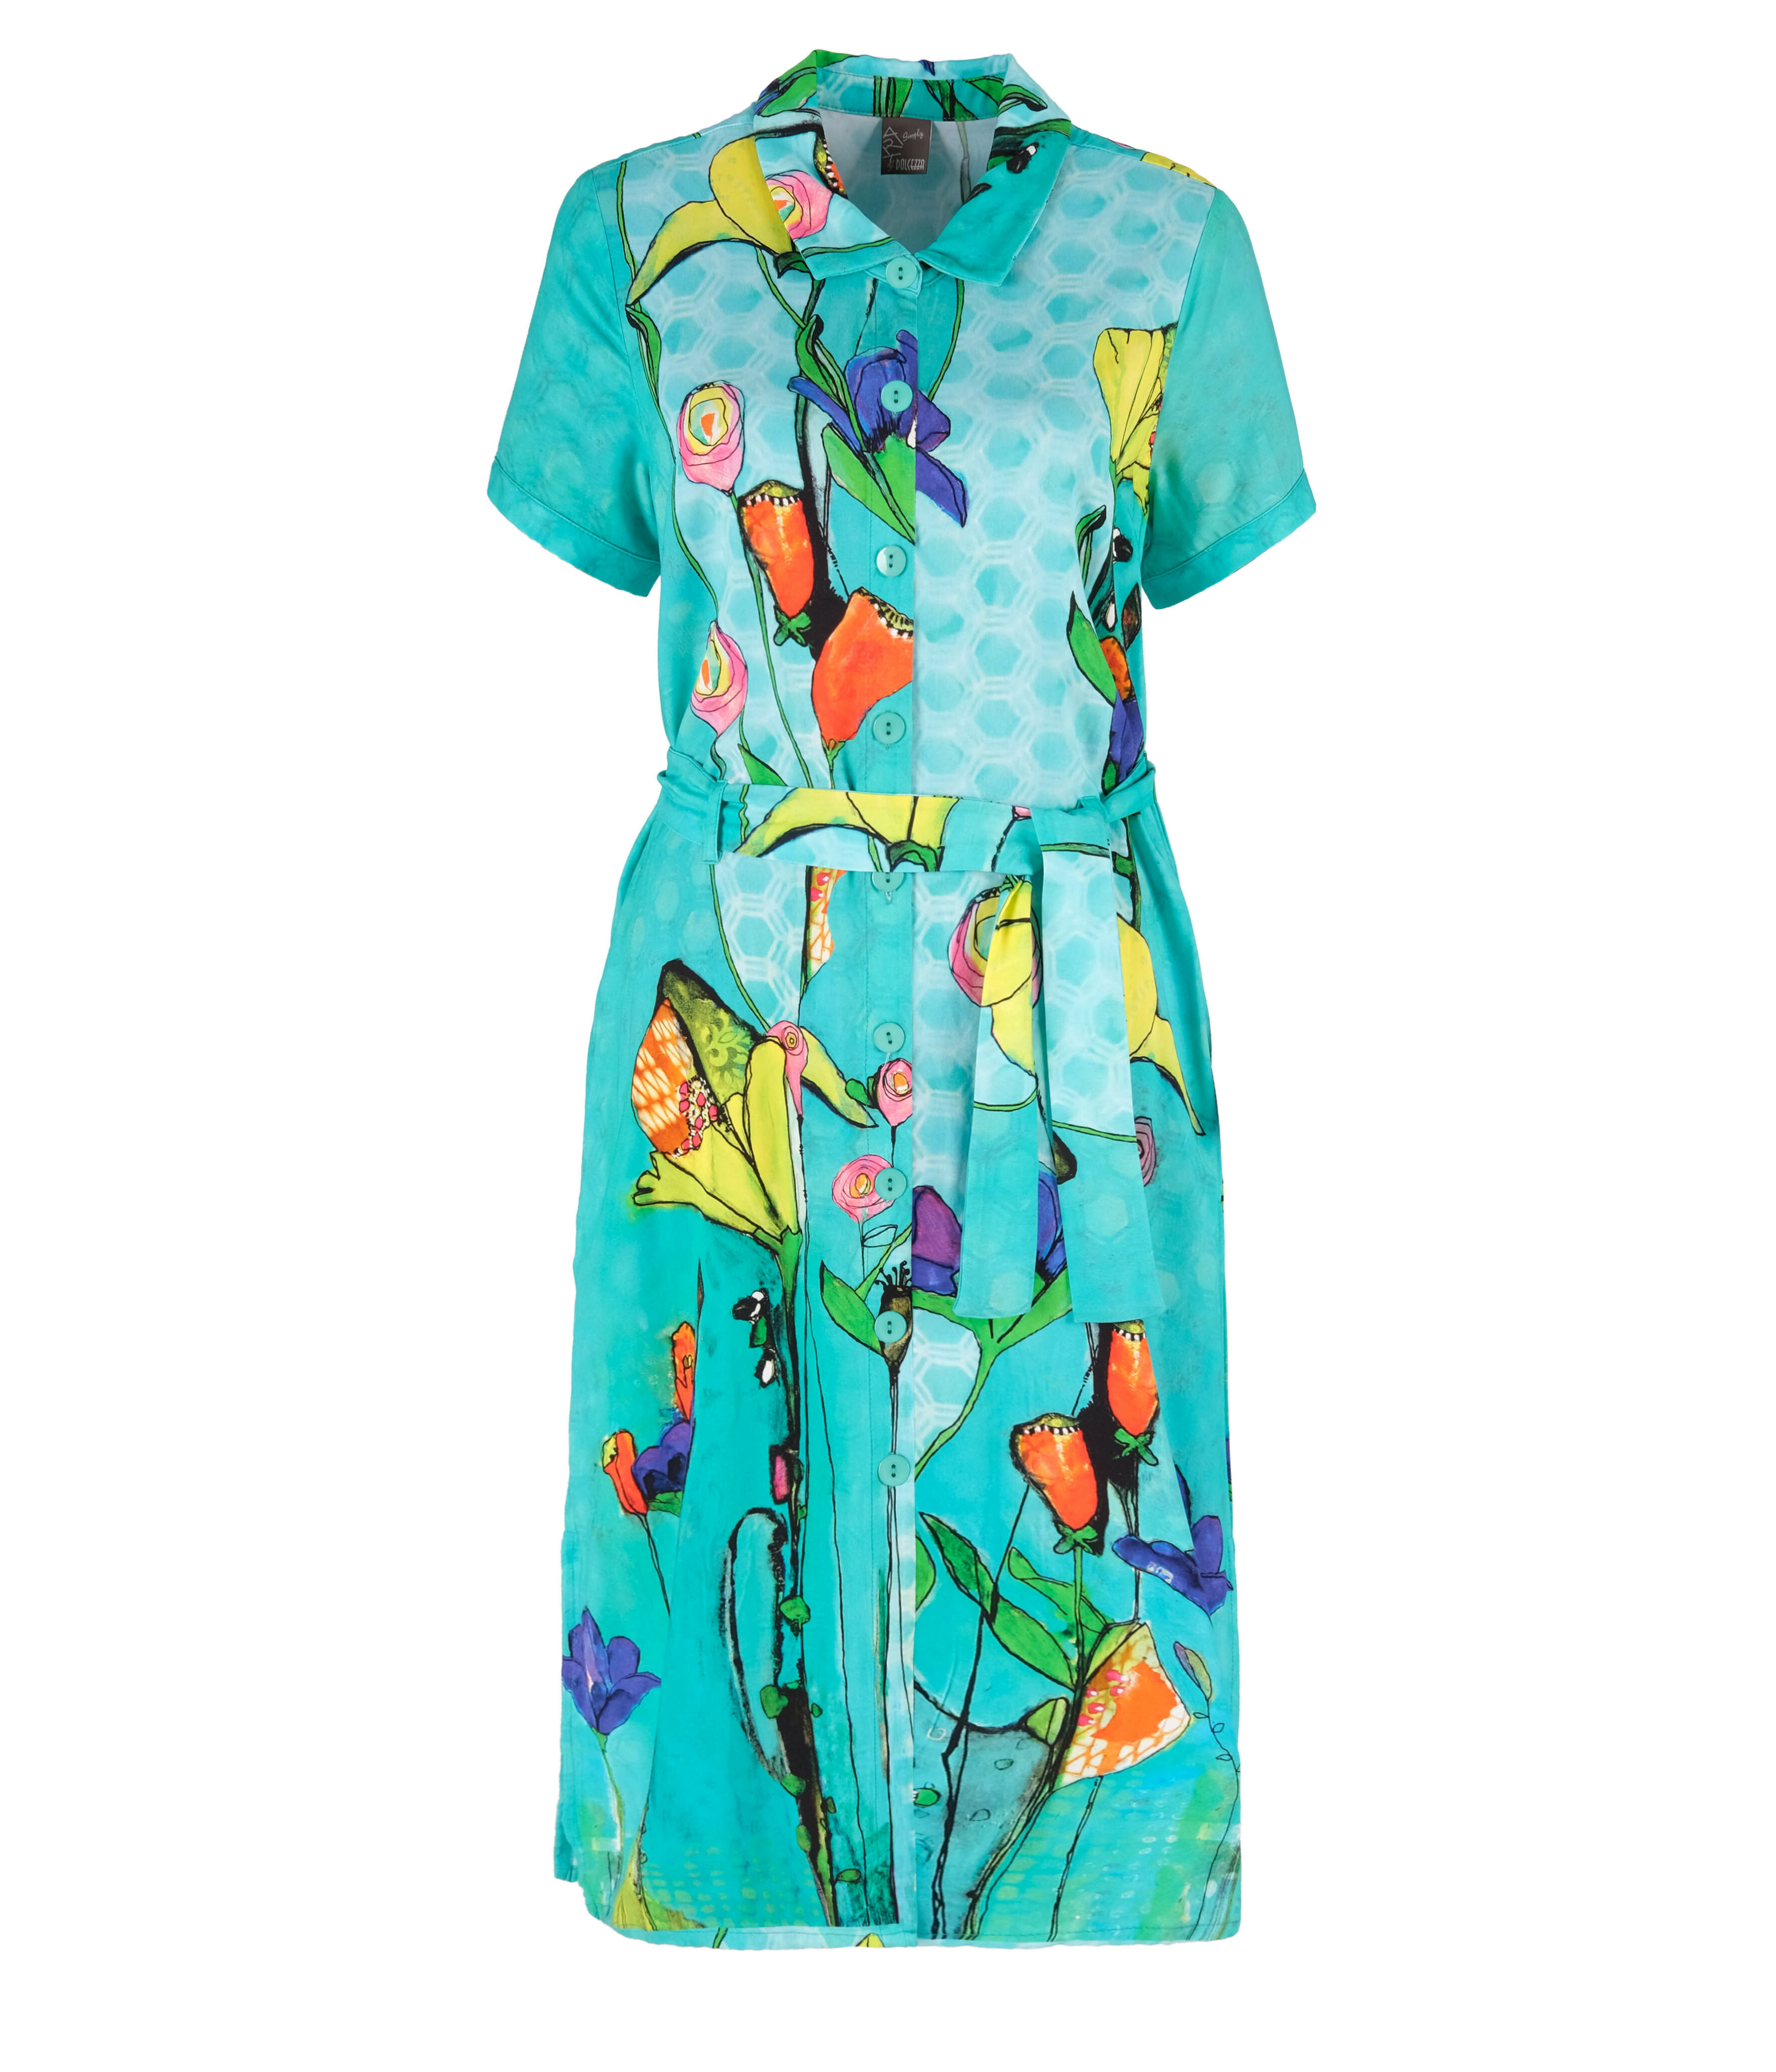 Simply Art Dolcezza: Summer's Coming Grand Bouquet Abstract Art Midi Shirt Dress DOLCEZZA_SIMPLYART_20746_N